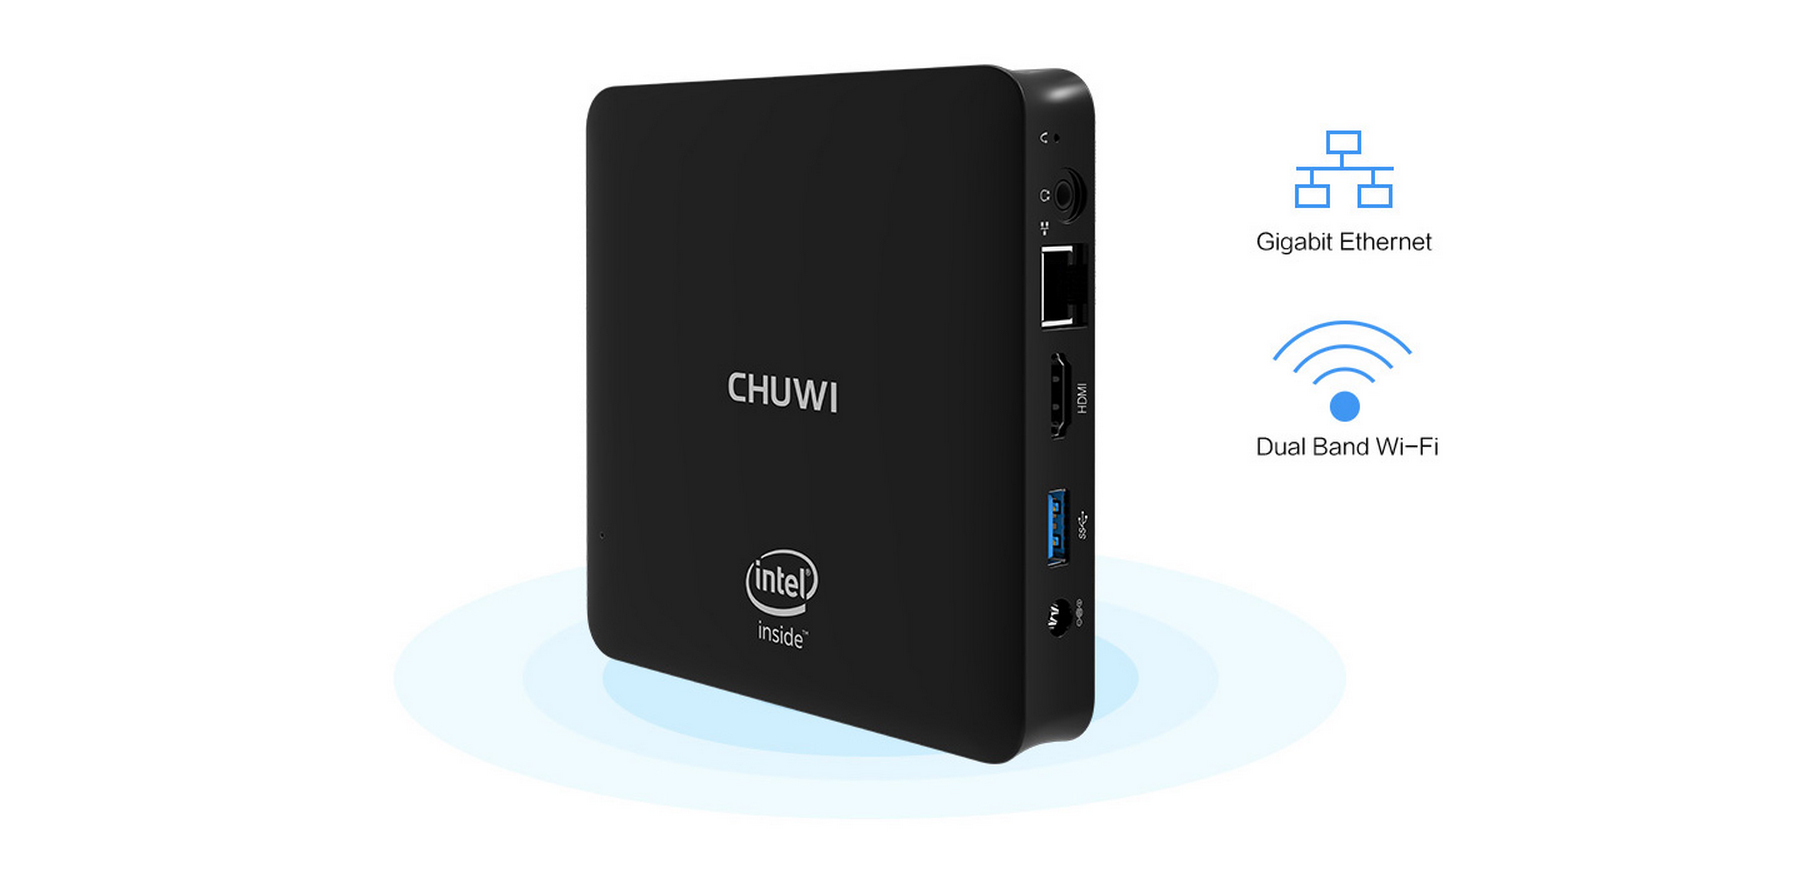 CHUWI HiBox Mini PC Quad Core Intel x5-Z8350 64bit Android 5.1 + Window 10 Dual OS 2.4G / 5G WiFi BT 4.0